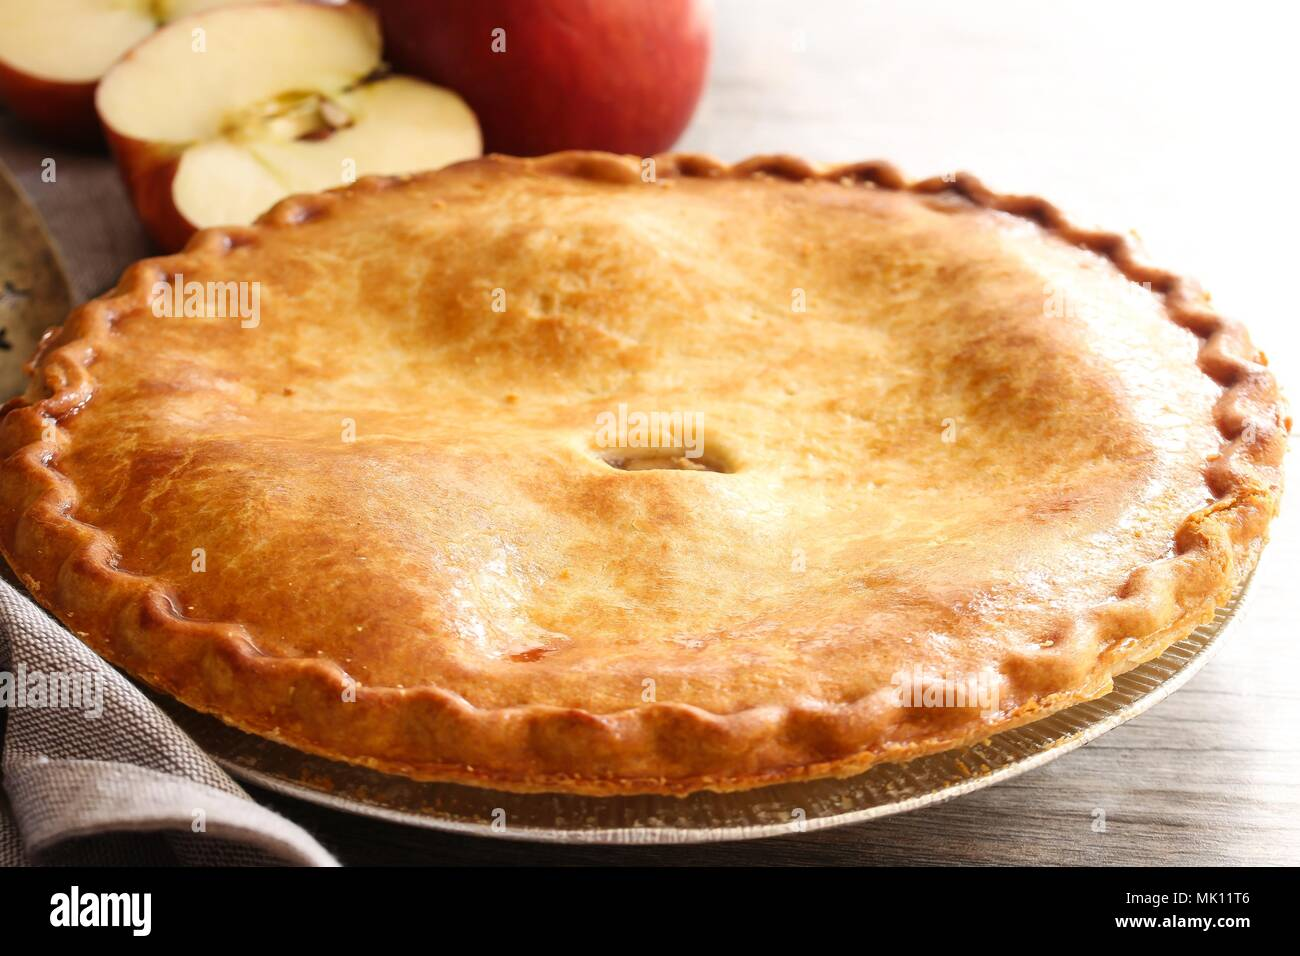 Homemade old fashioned Apple Pie - Stock Image